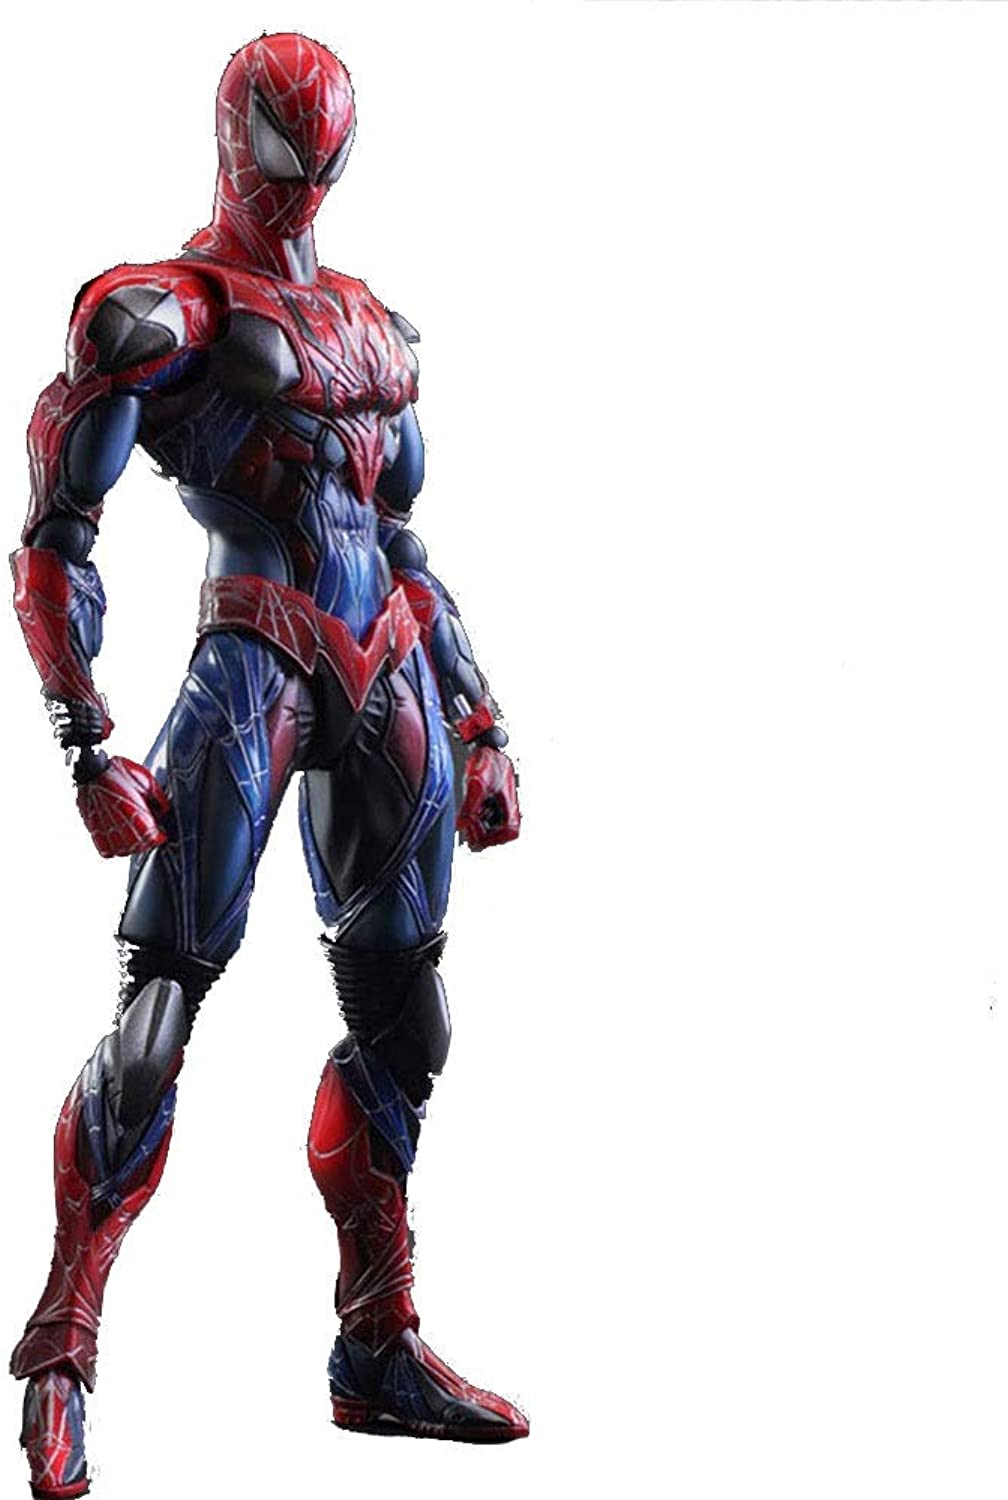 PL Action Figure Marvel Spiderman, Sitting Posture,Toy Model Anime Model Modeling Scene Ornaments Souvenirs Collectibles Crafts 28cm Toys Statue